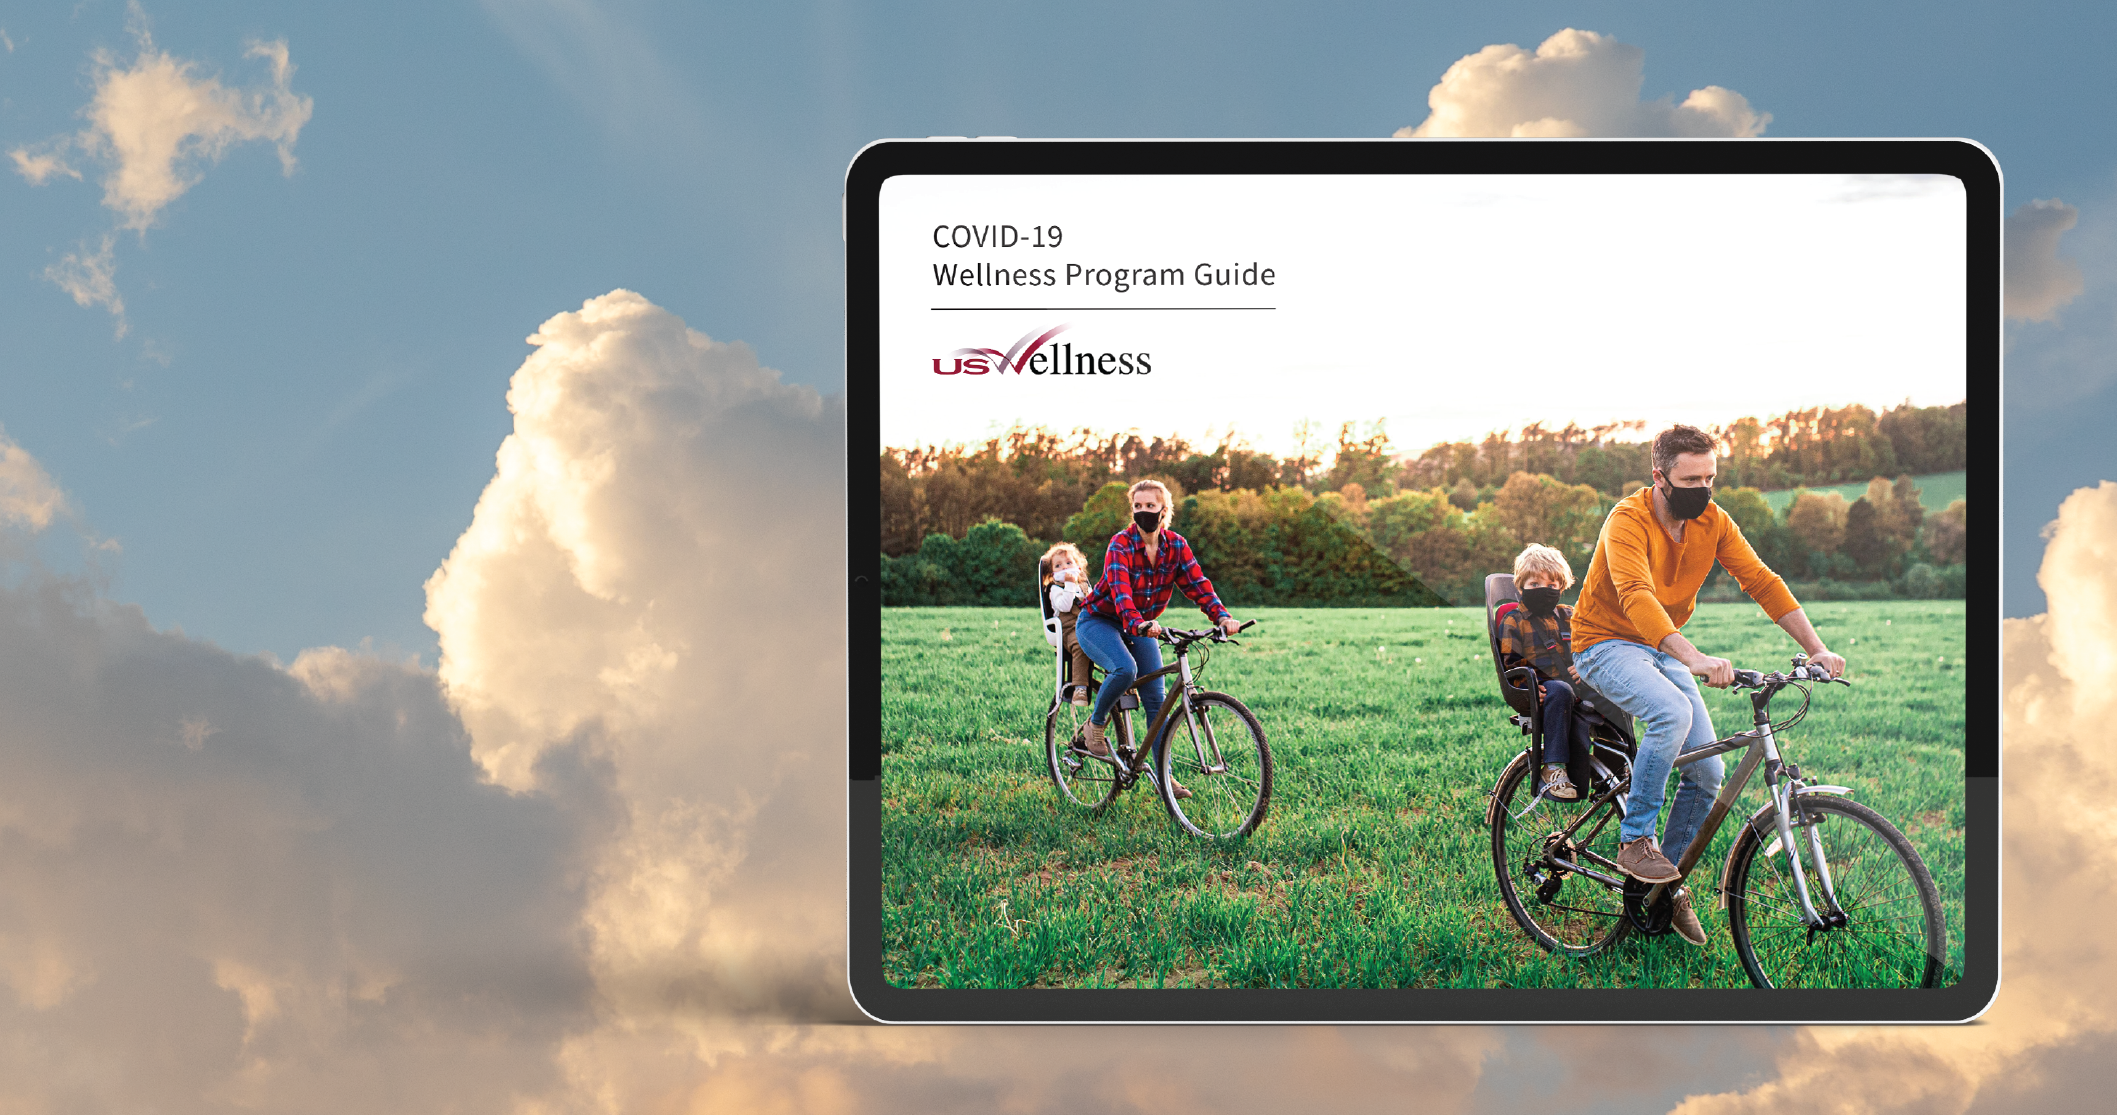 tablet displays COVID-19 wellness program guide